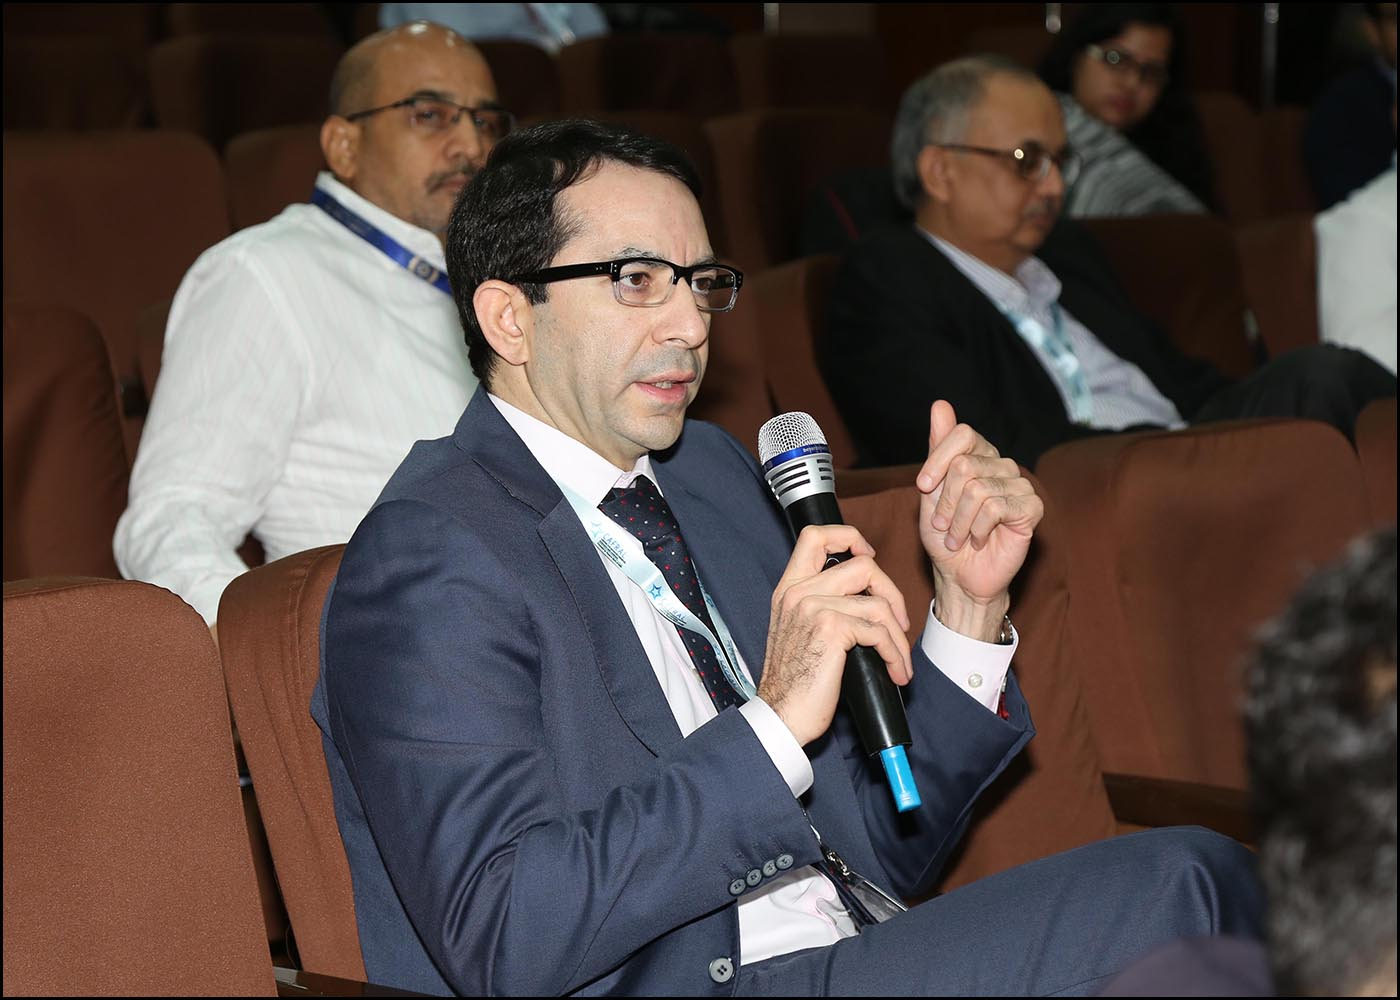 Mr. Ayhan Kose, Director, The World Bank, USA